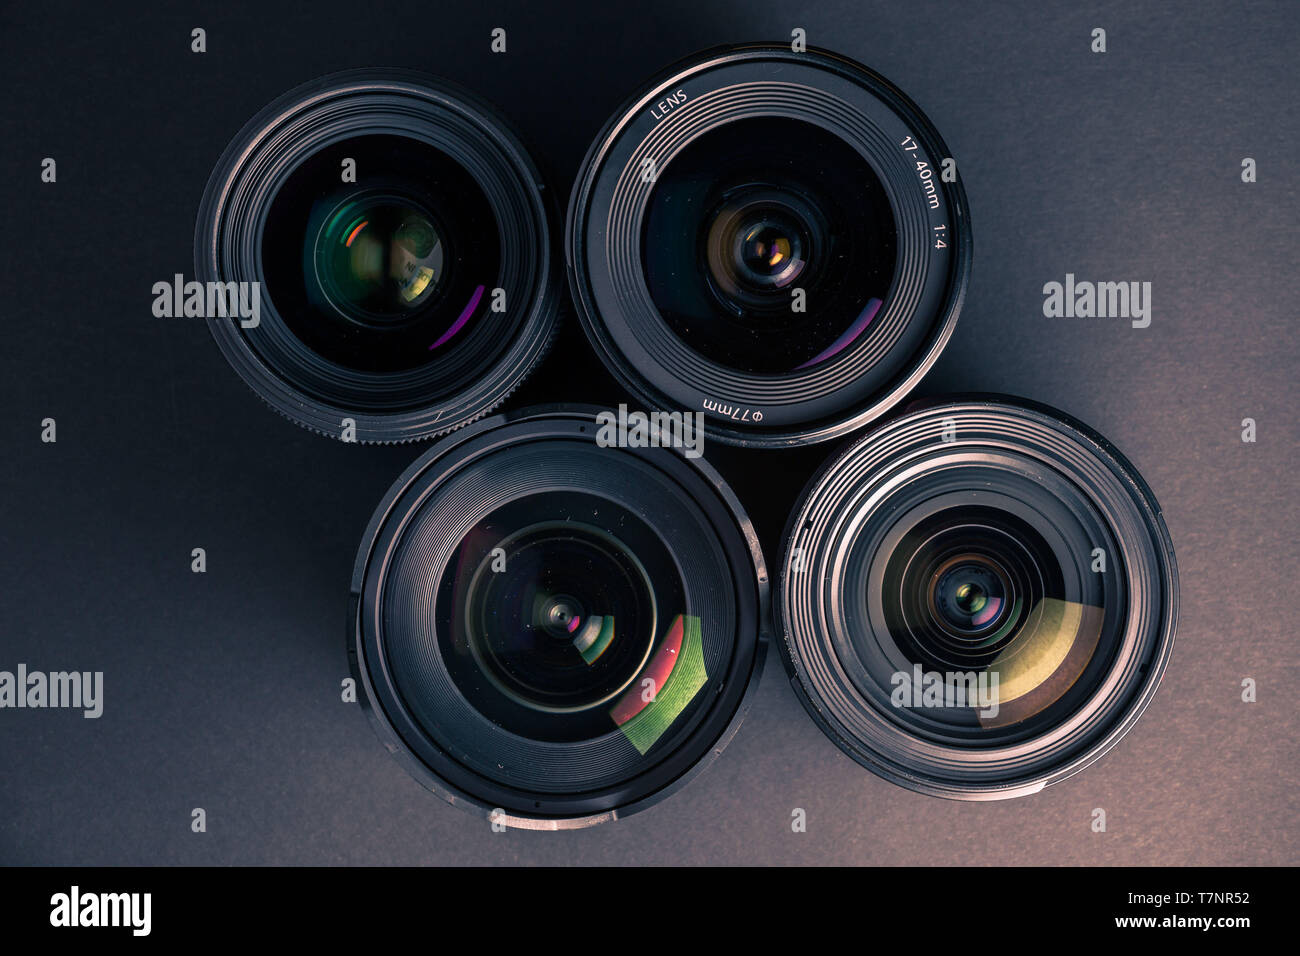 Set of various DSLR lenses with colorful reflections - shot from above - Stock Image